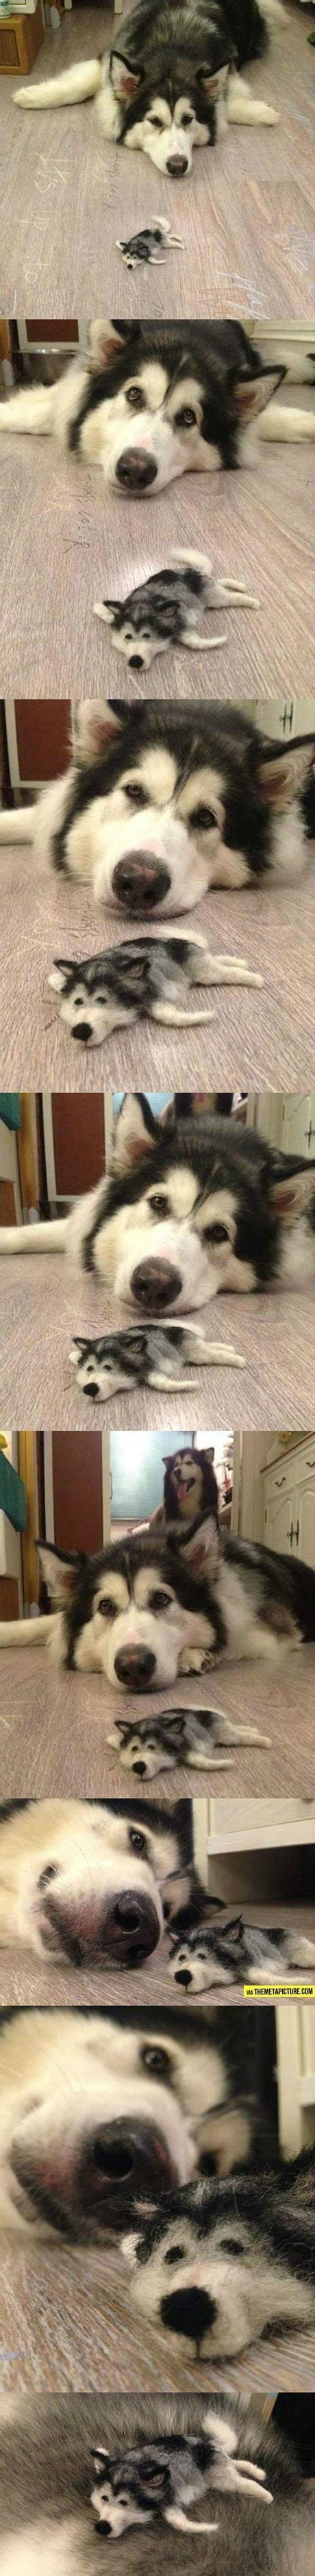 puppy not much no that s not a husky puppy not a husky either think much much